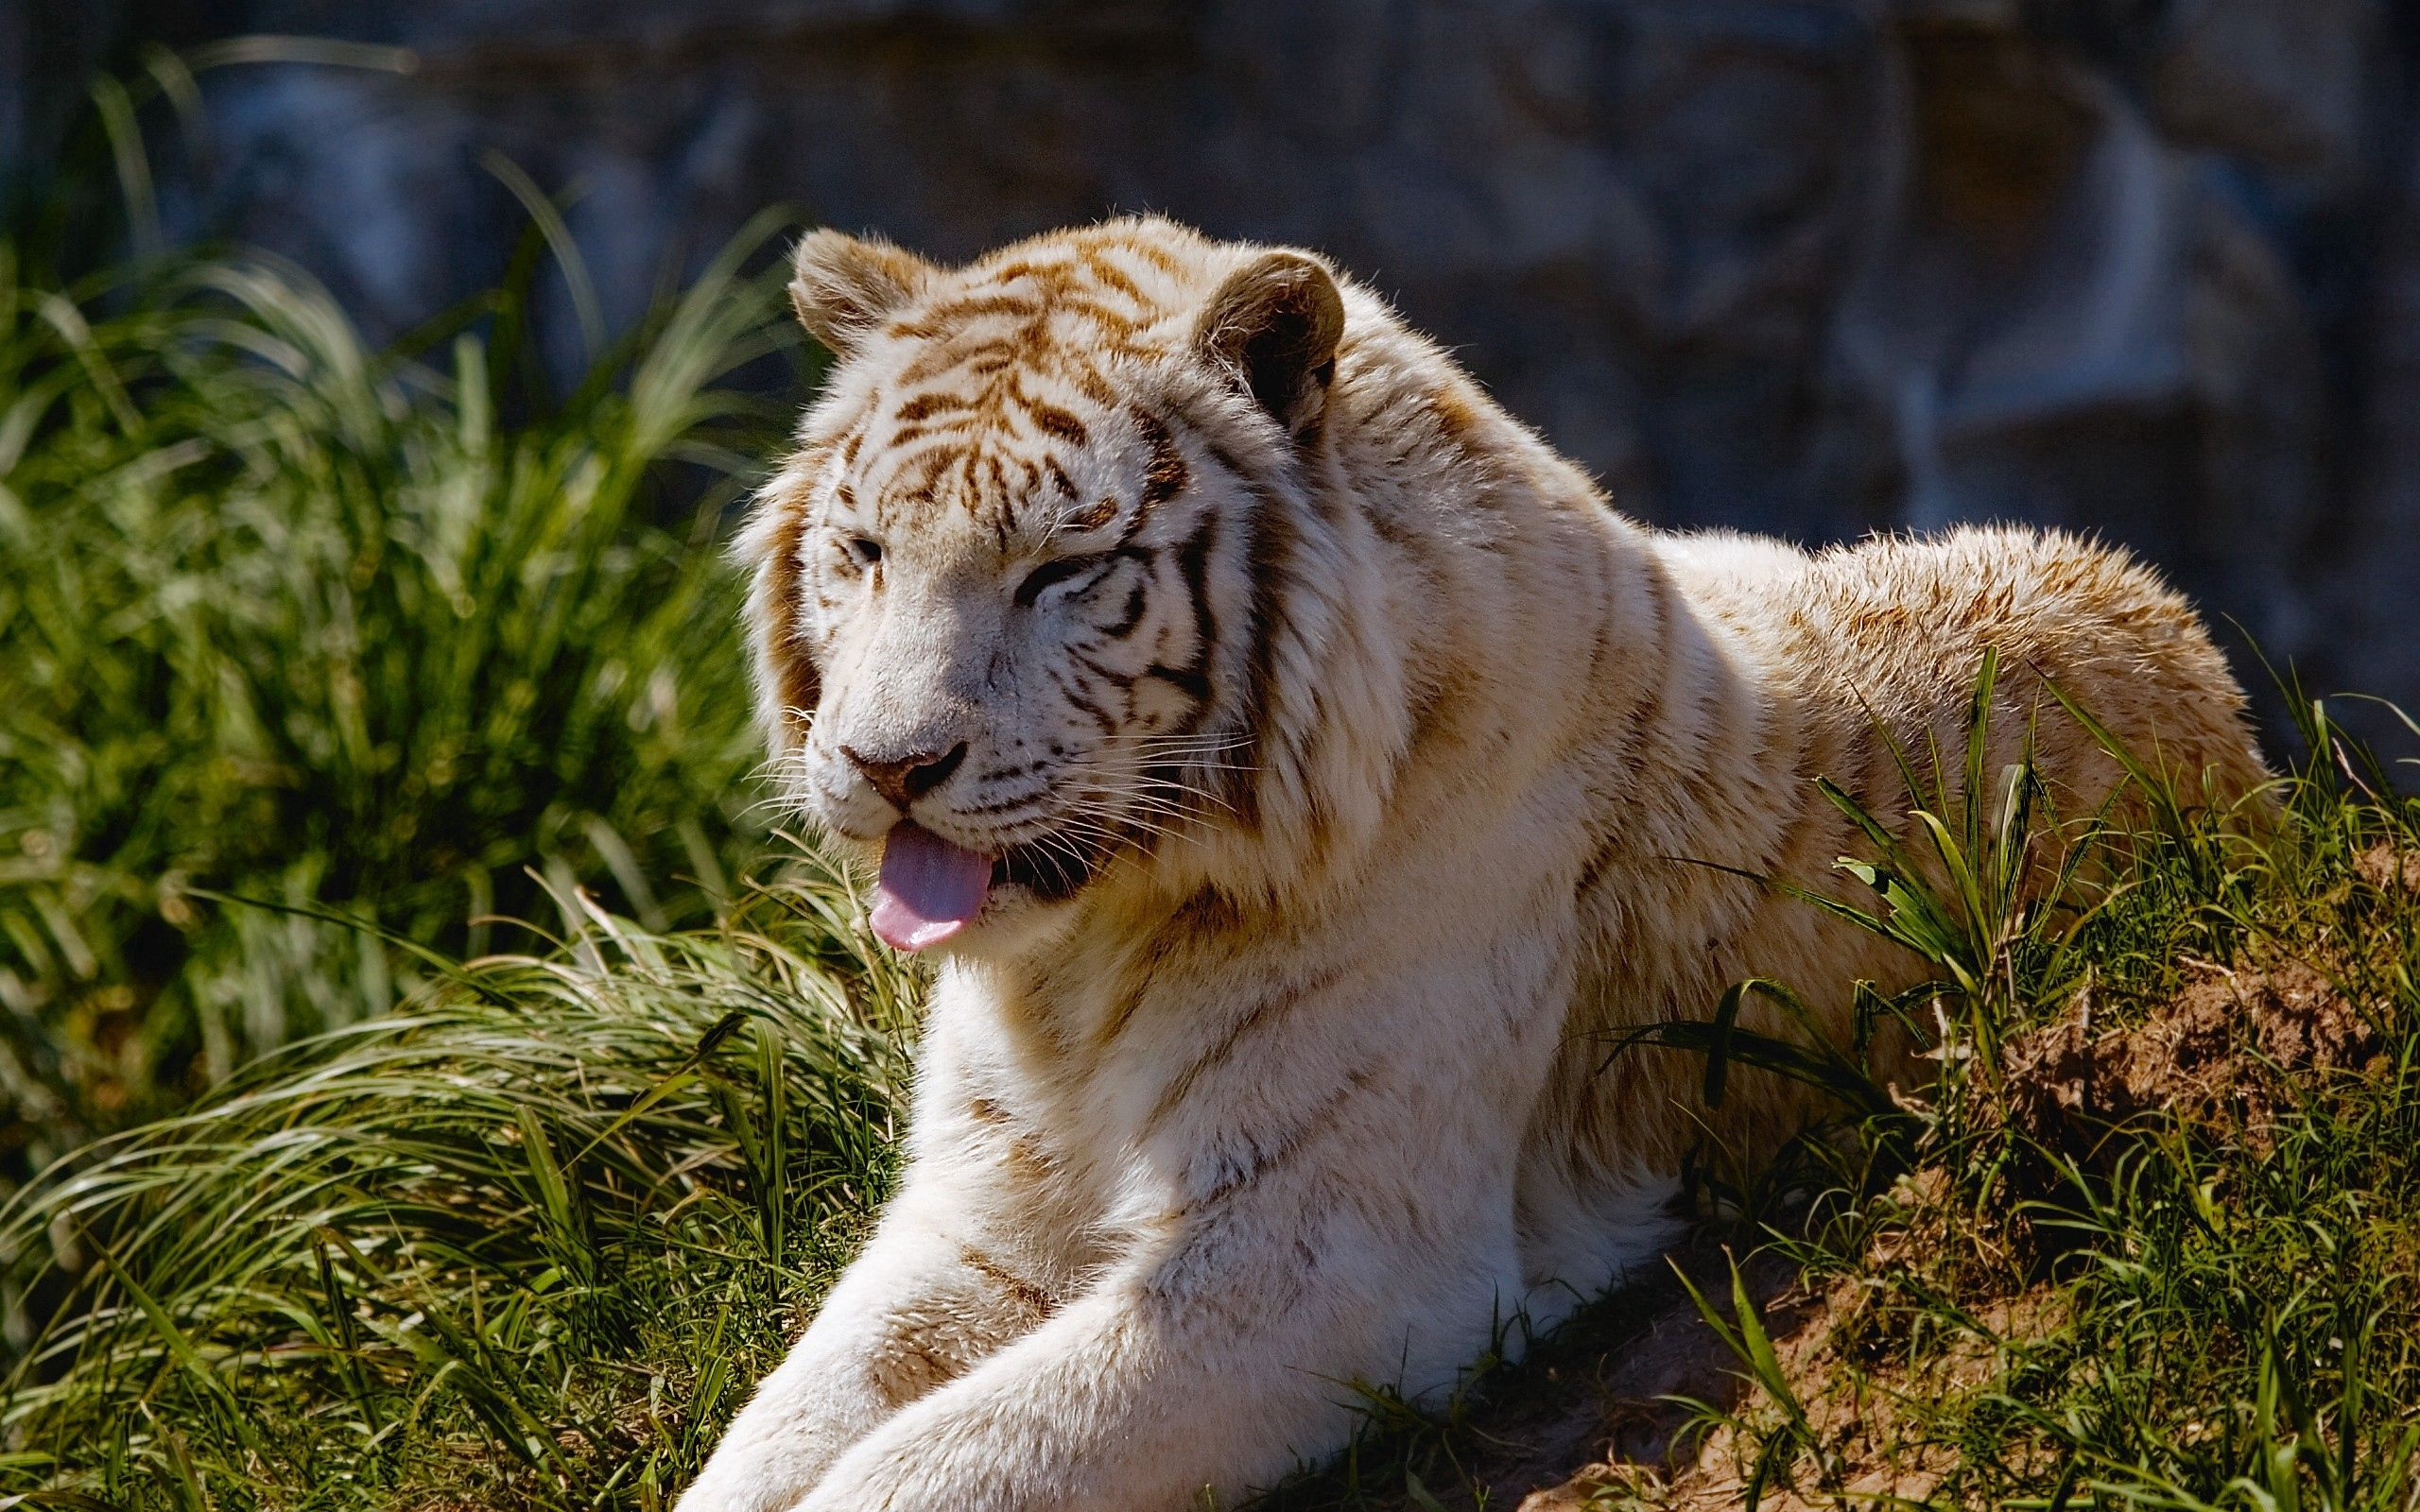 123771 download wallpaper Animals, Tiger, Protruding Tongue, Tongue Stuck Out, Grass, To Lie Down, Lie, Predator, Big Cat screensavers and pictures for free